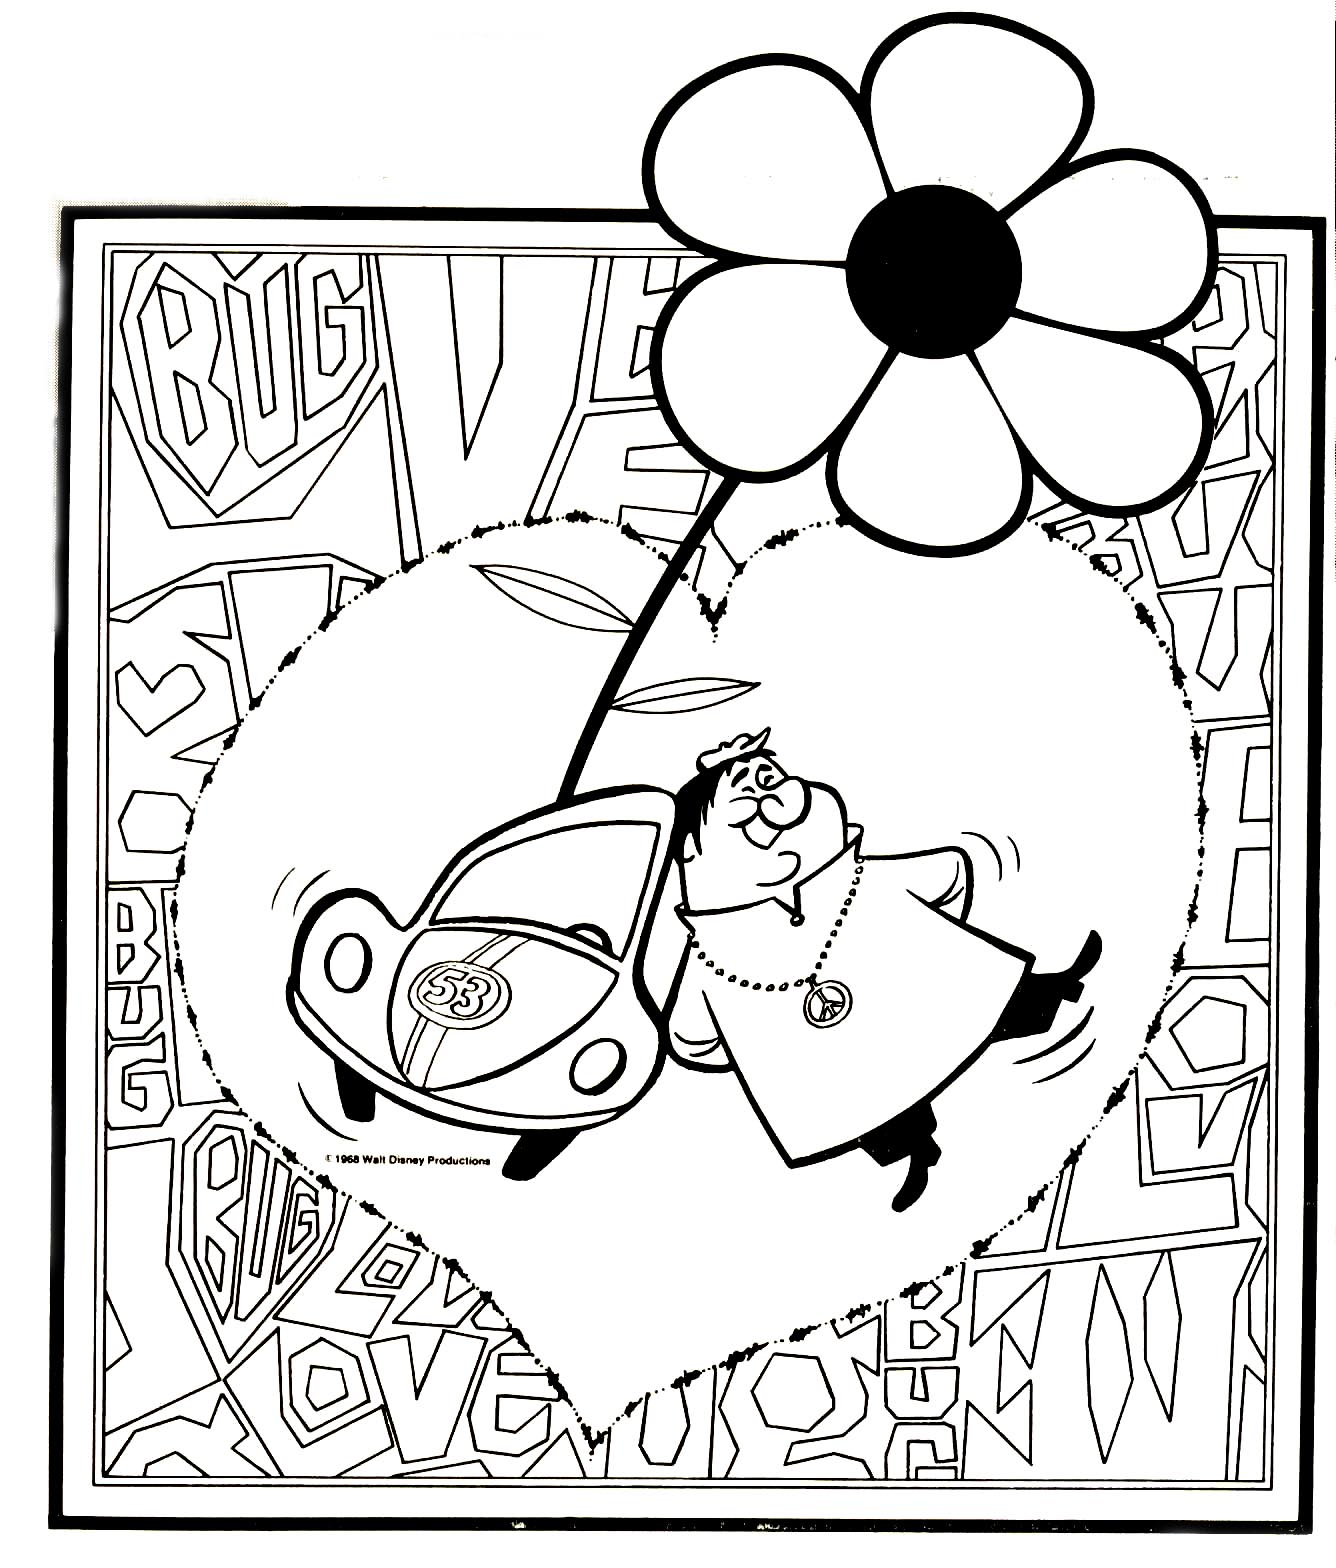 Herbie Fully Loaded Coloring Page Coloring Pages Auto Electrical